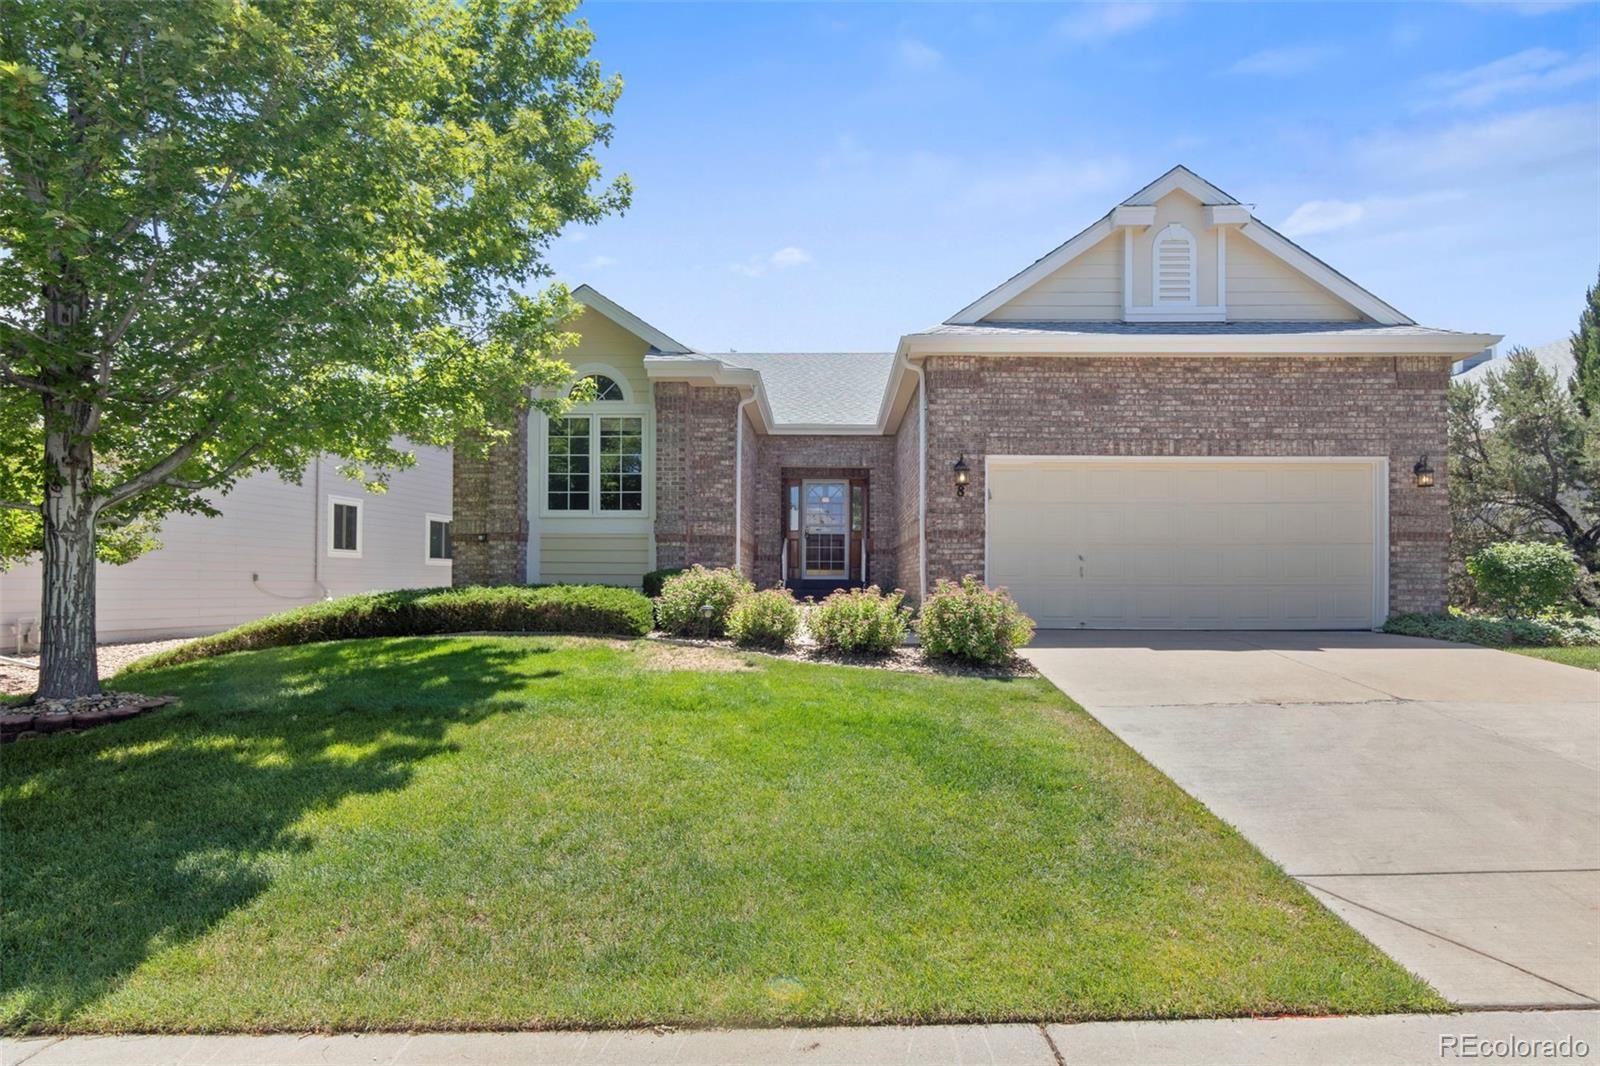 8 Hathaway Lane, Highlands Ranch, CO 80130 - #: 6654548